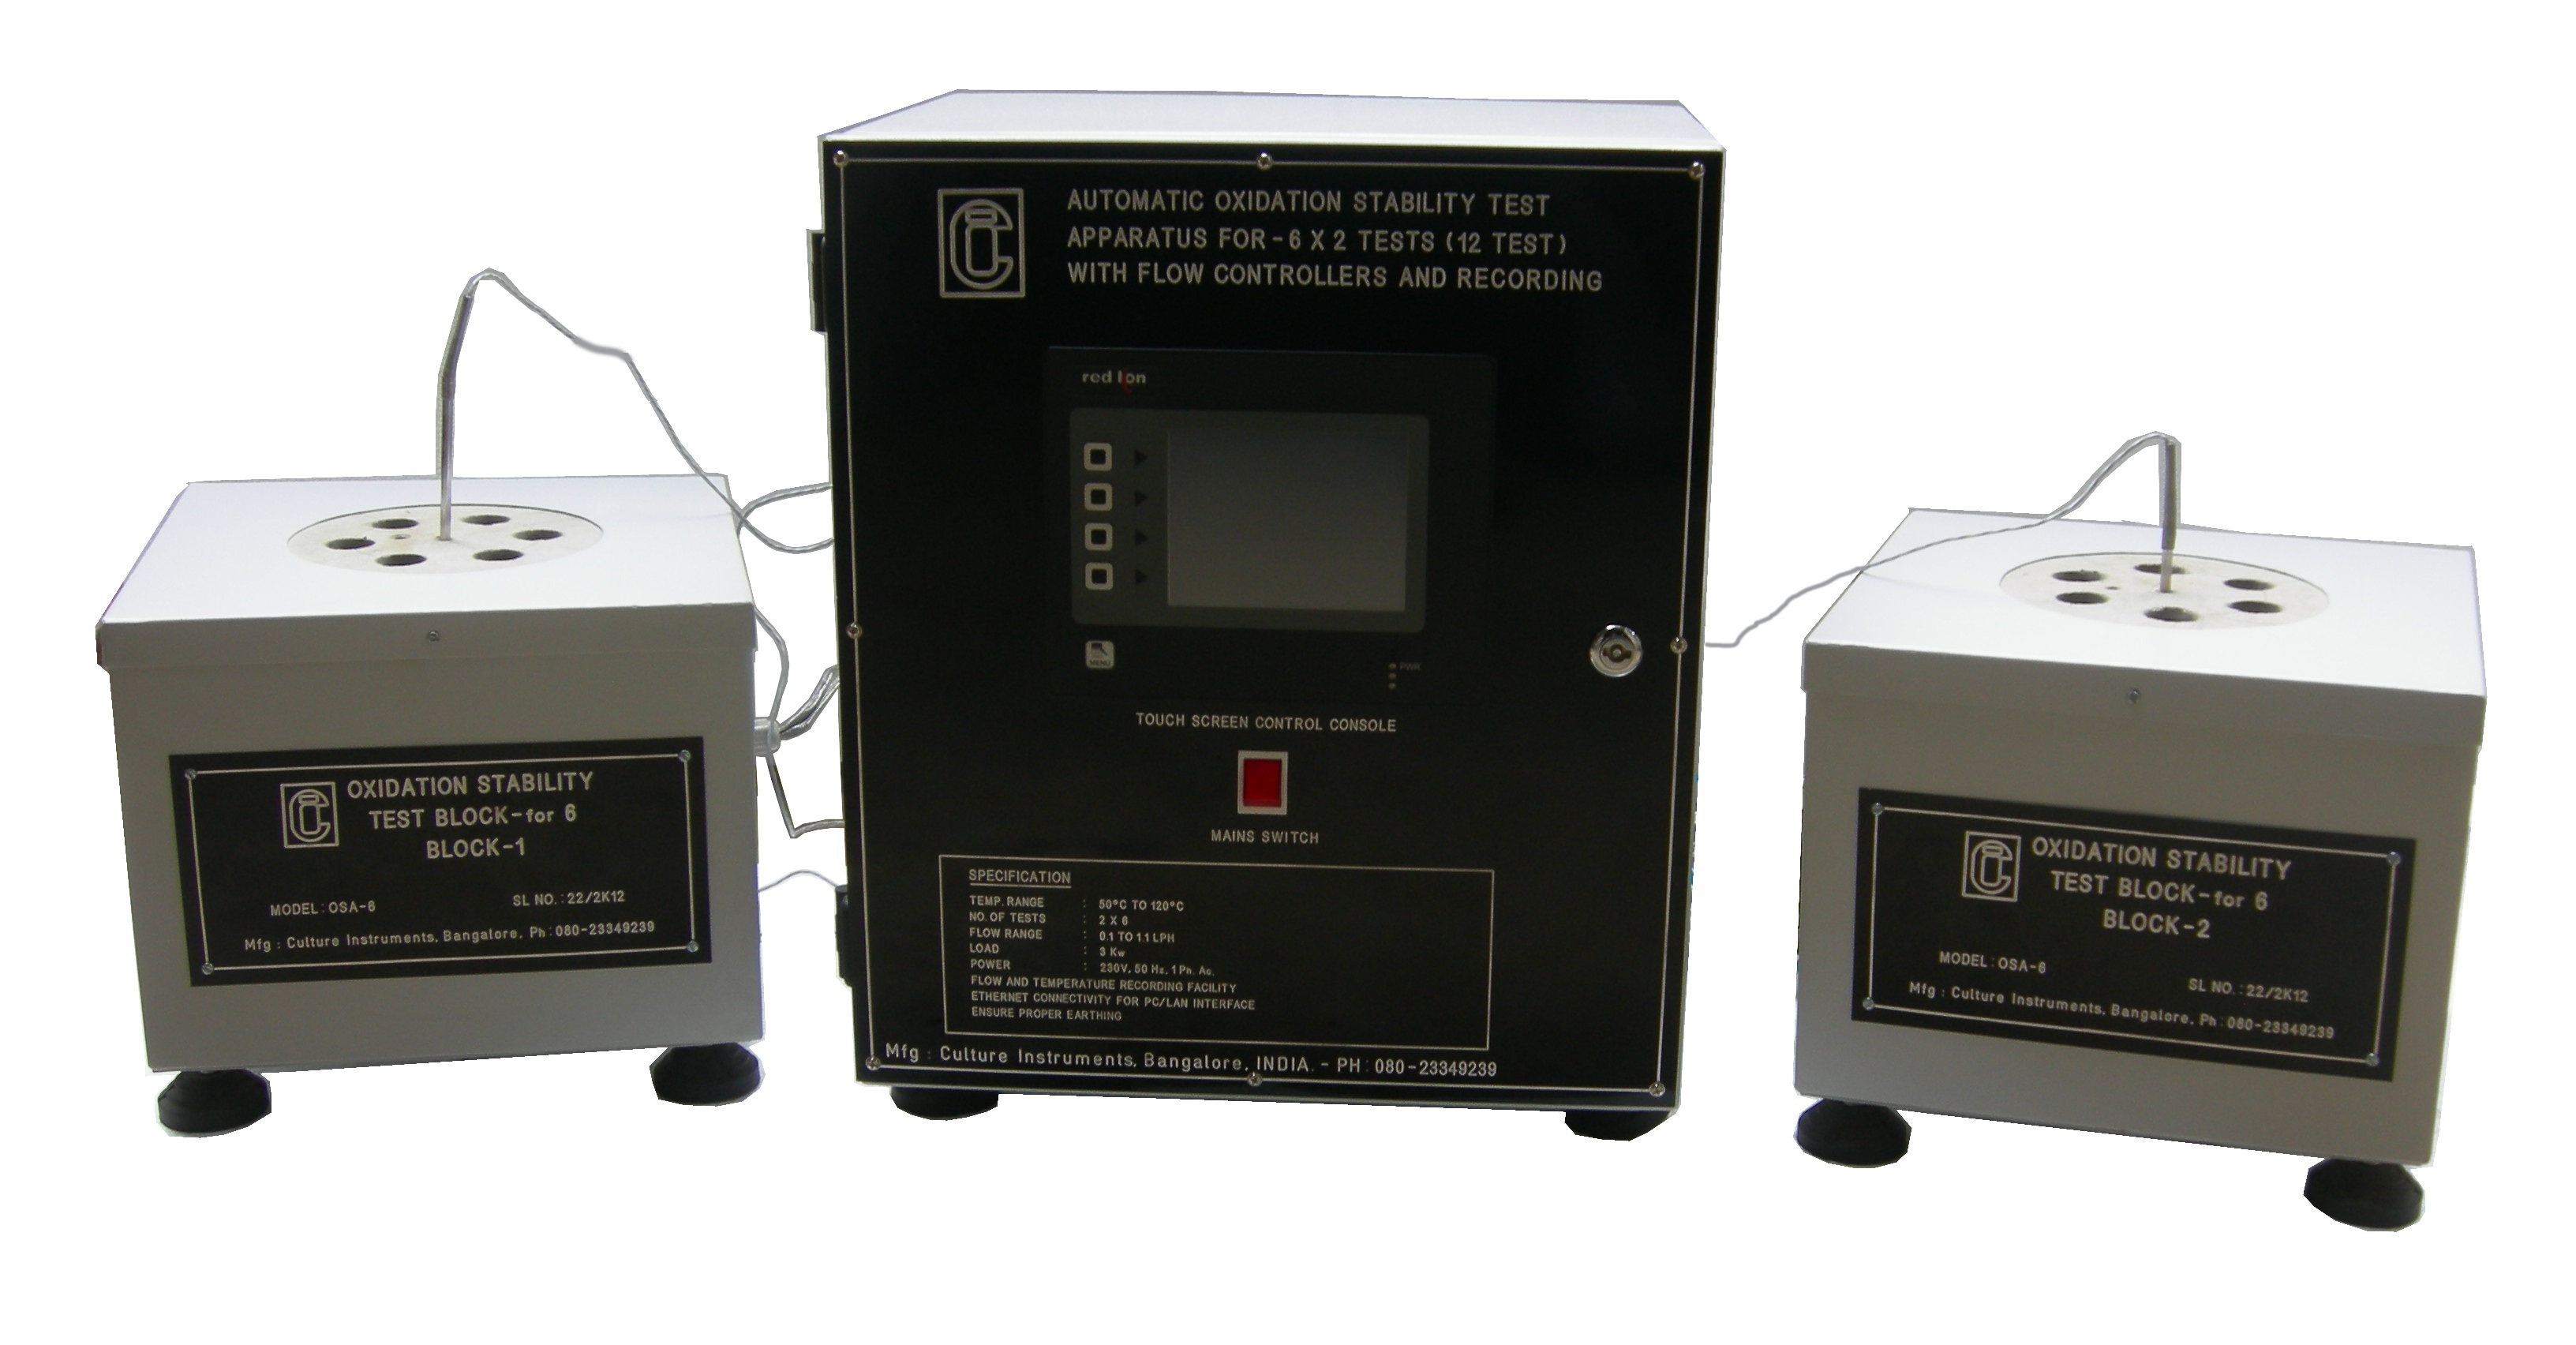 OXIDATION STABILITY TEST APPARATUS